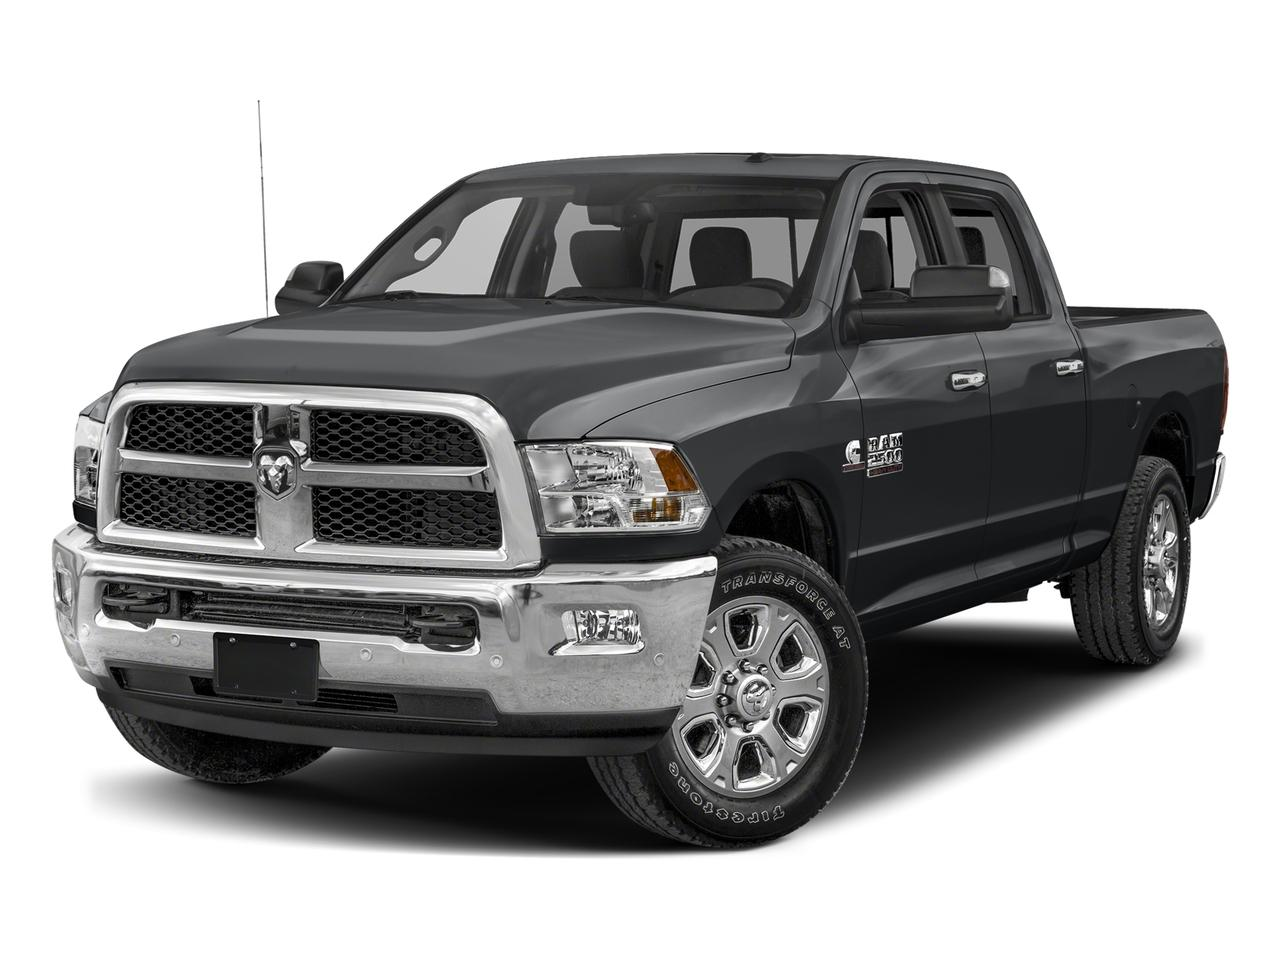 2016 Ram 2500 Vehicle Photo in CAPE MAY COURT HOUSE, NJ 08210-2432